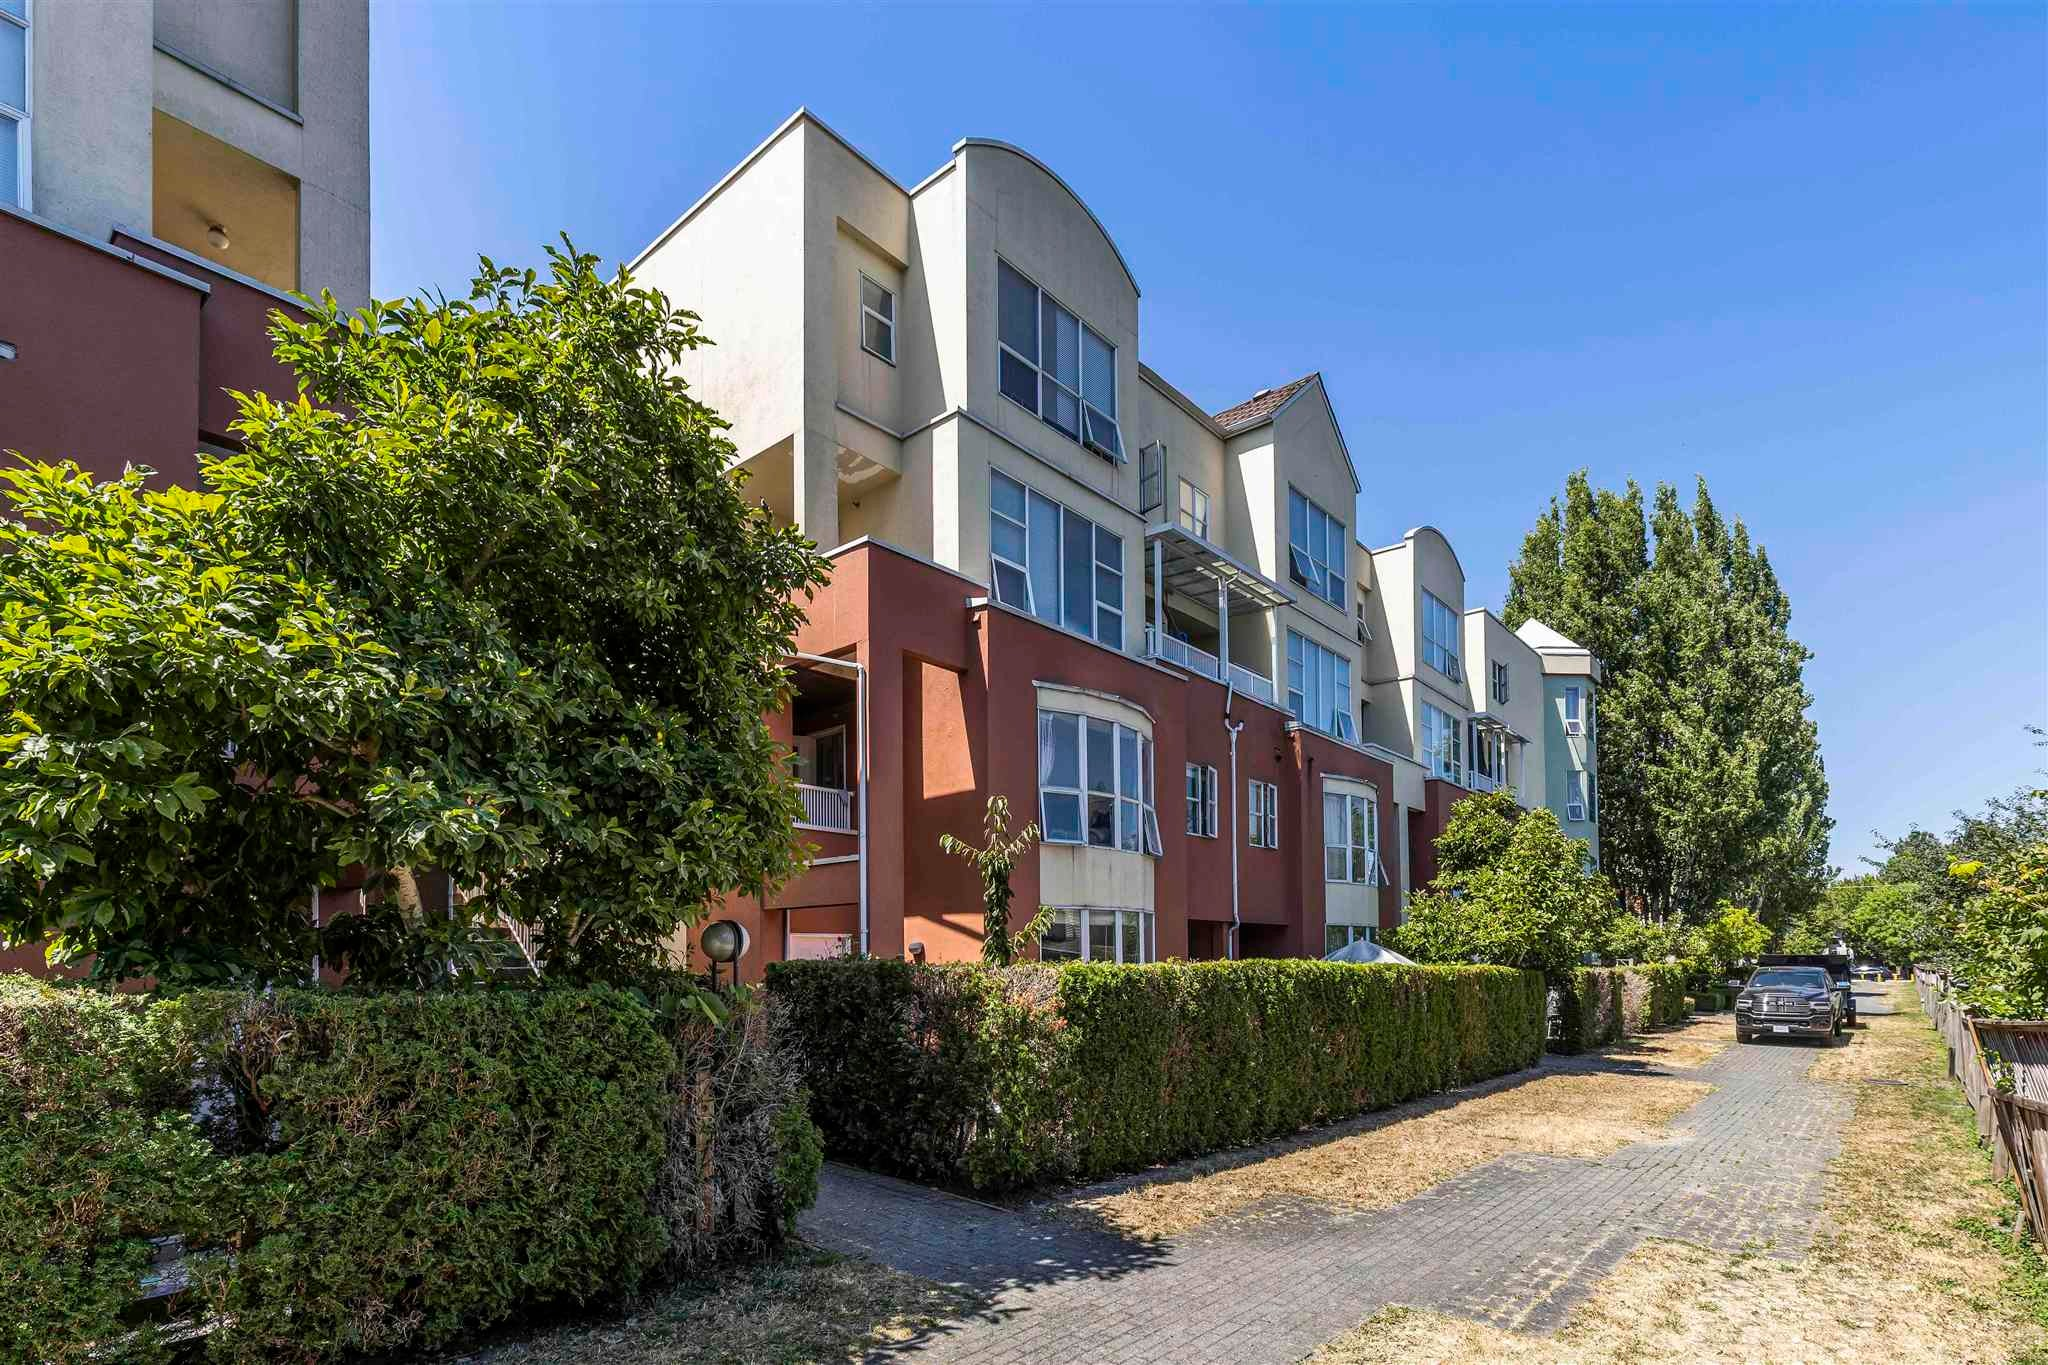 157 8333 JONES ROAD - Brighouse South Townhouse for sale, 3 Bedrooms (R2604021)